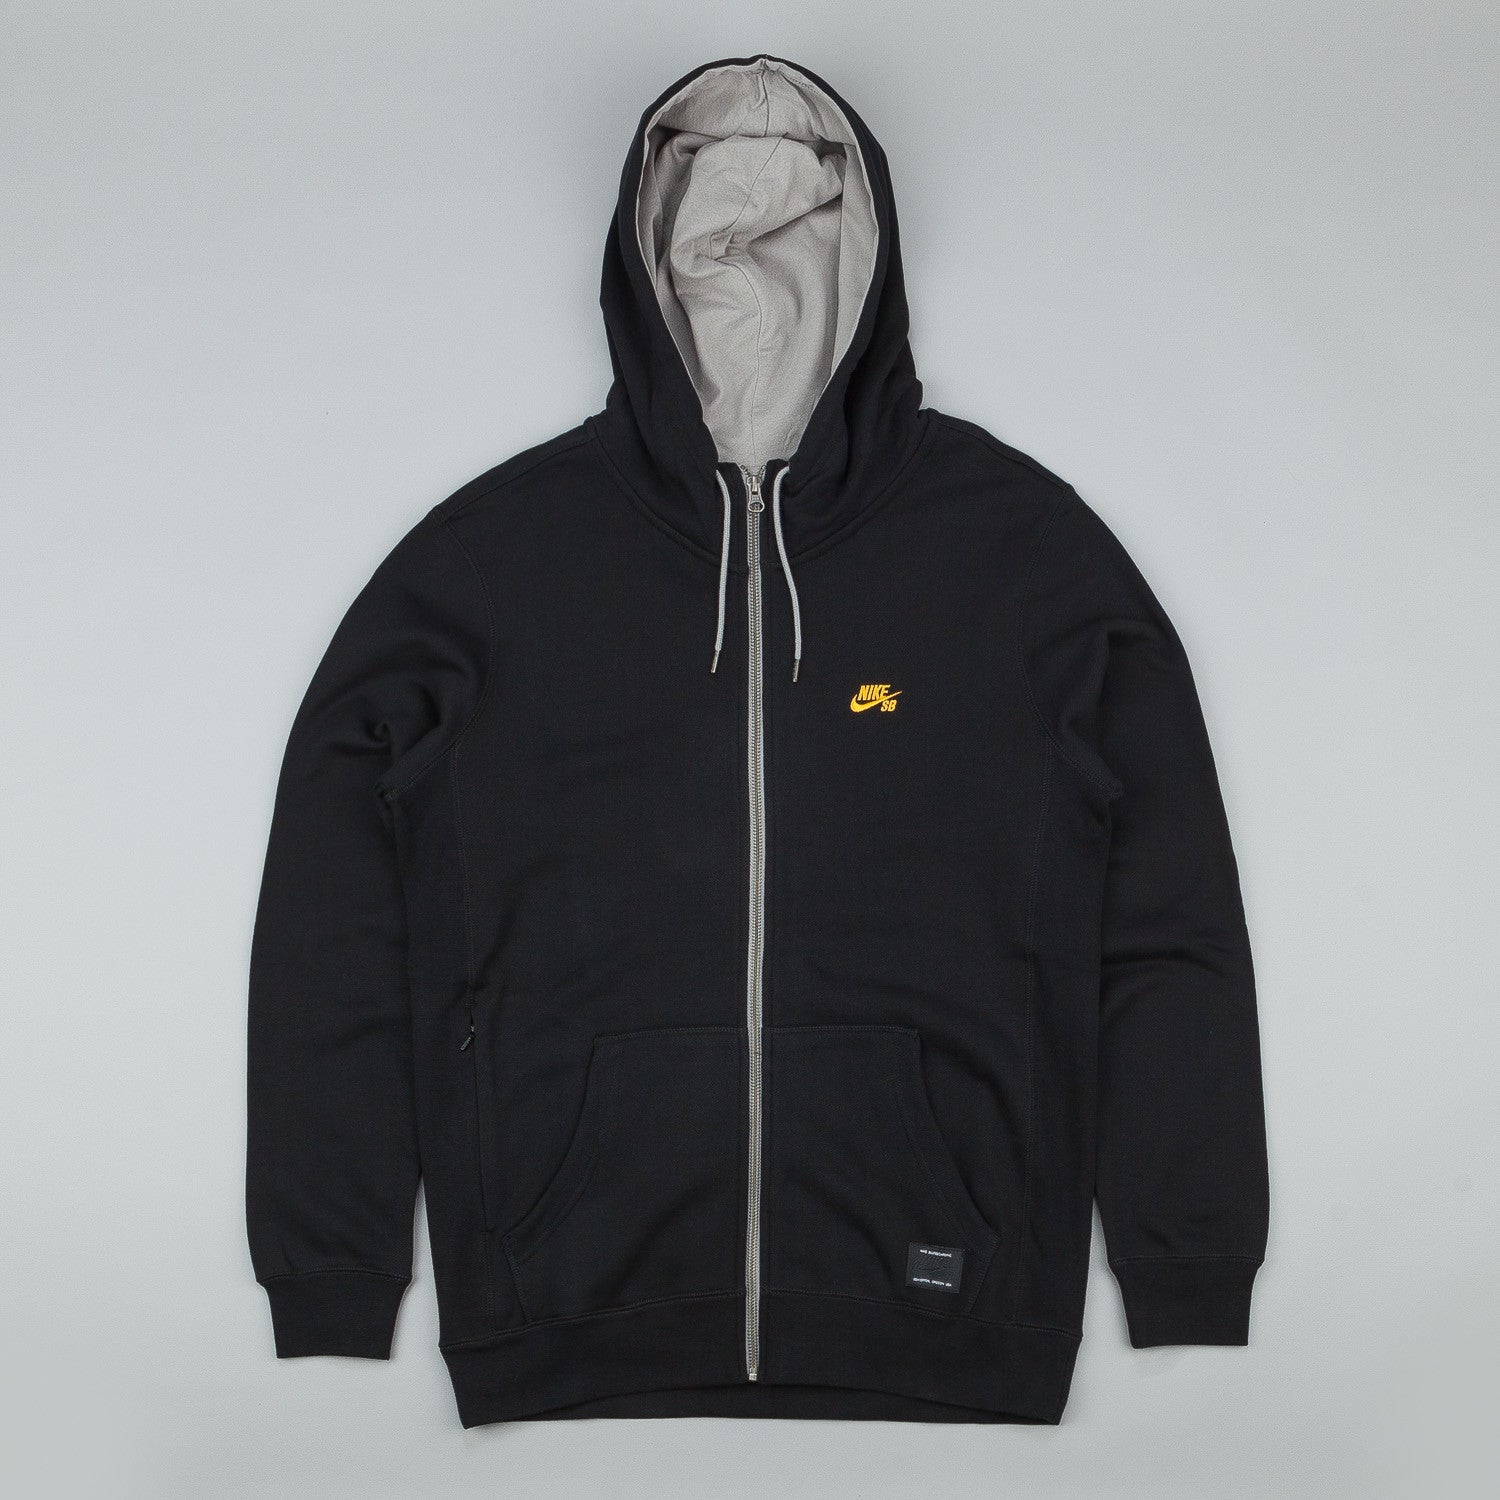 Nike SB Northrup Icon Zipped Hooded Sweatshirt Black / University Gold